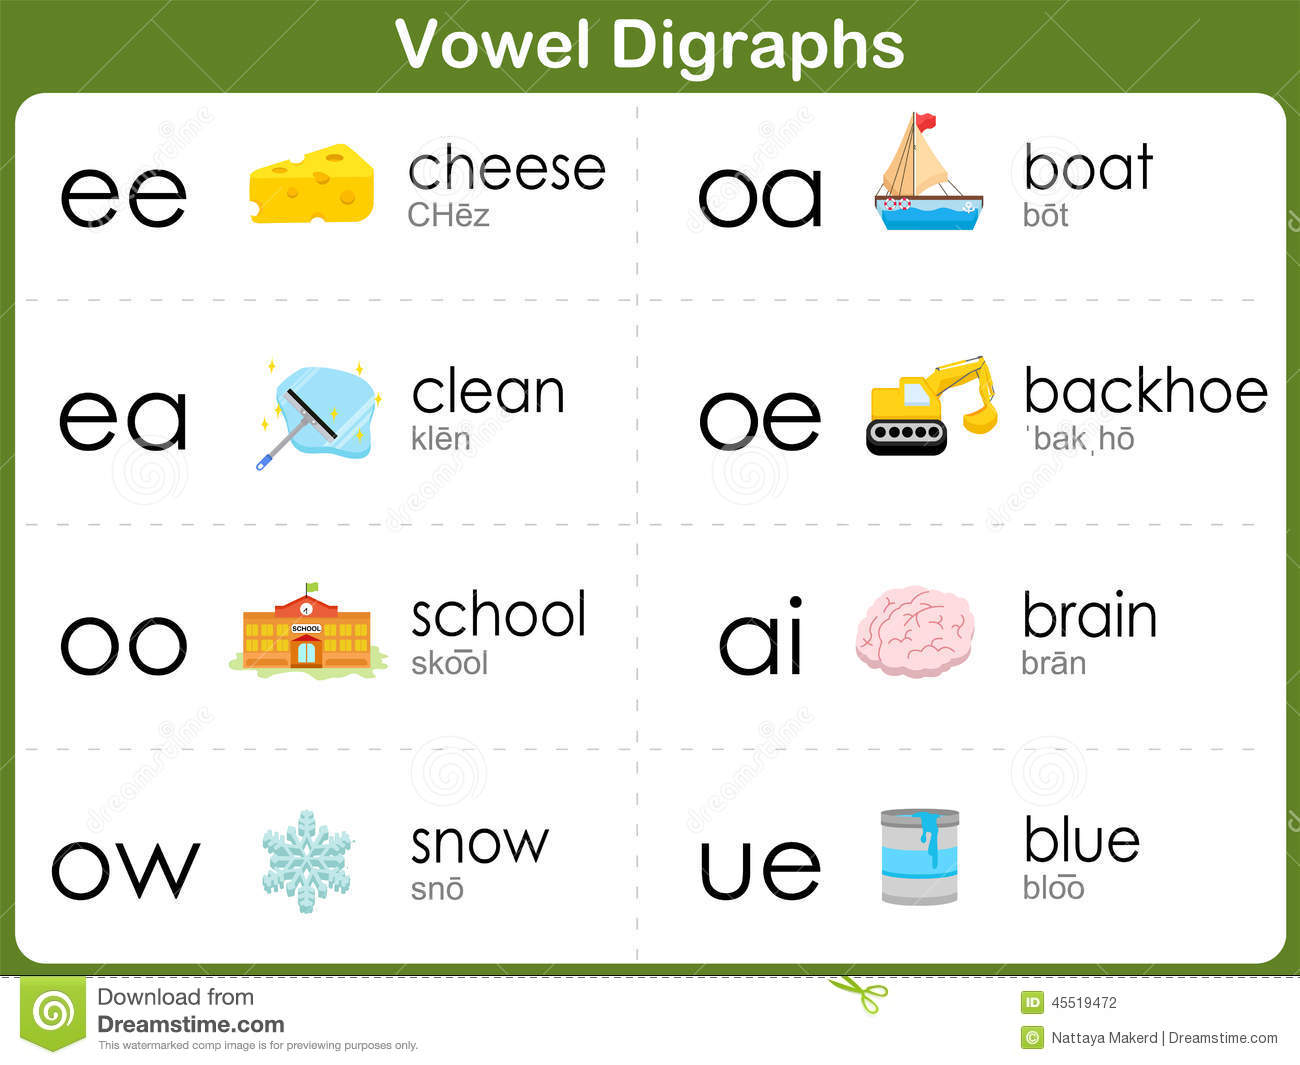 Worksheets Vowel Digraph Worksheets worksheet digraph mytourvn study site vowel digraphs for kids stock vector image 45519472 royalty free download worksheet